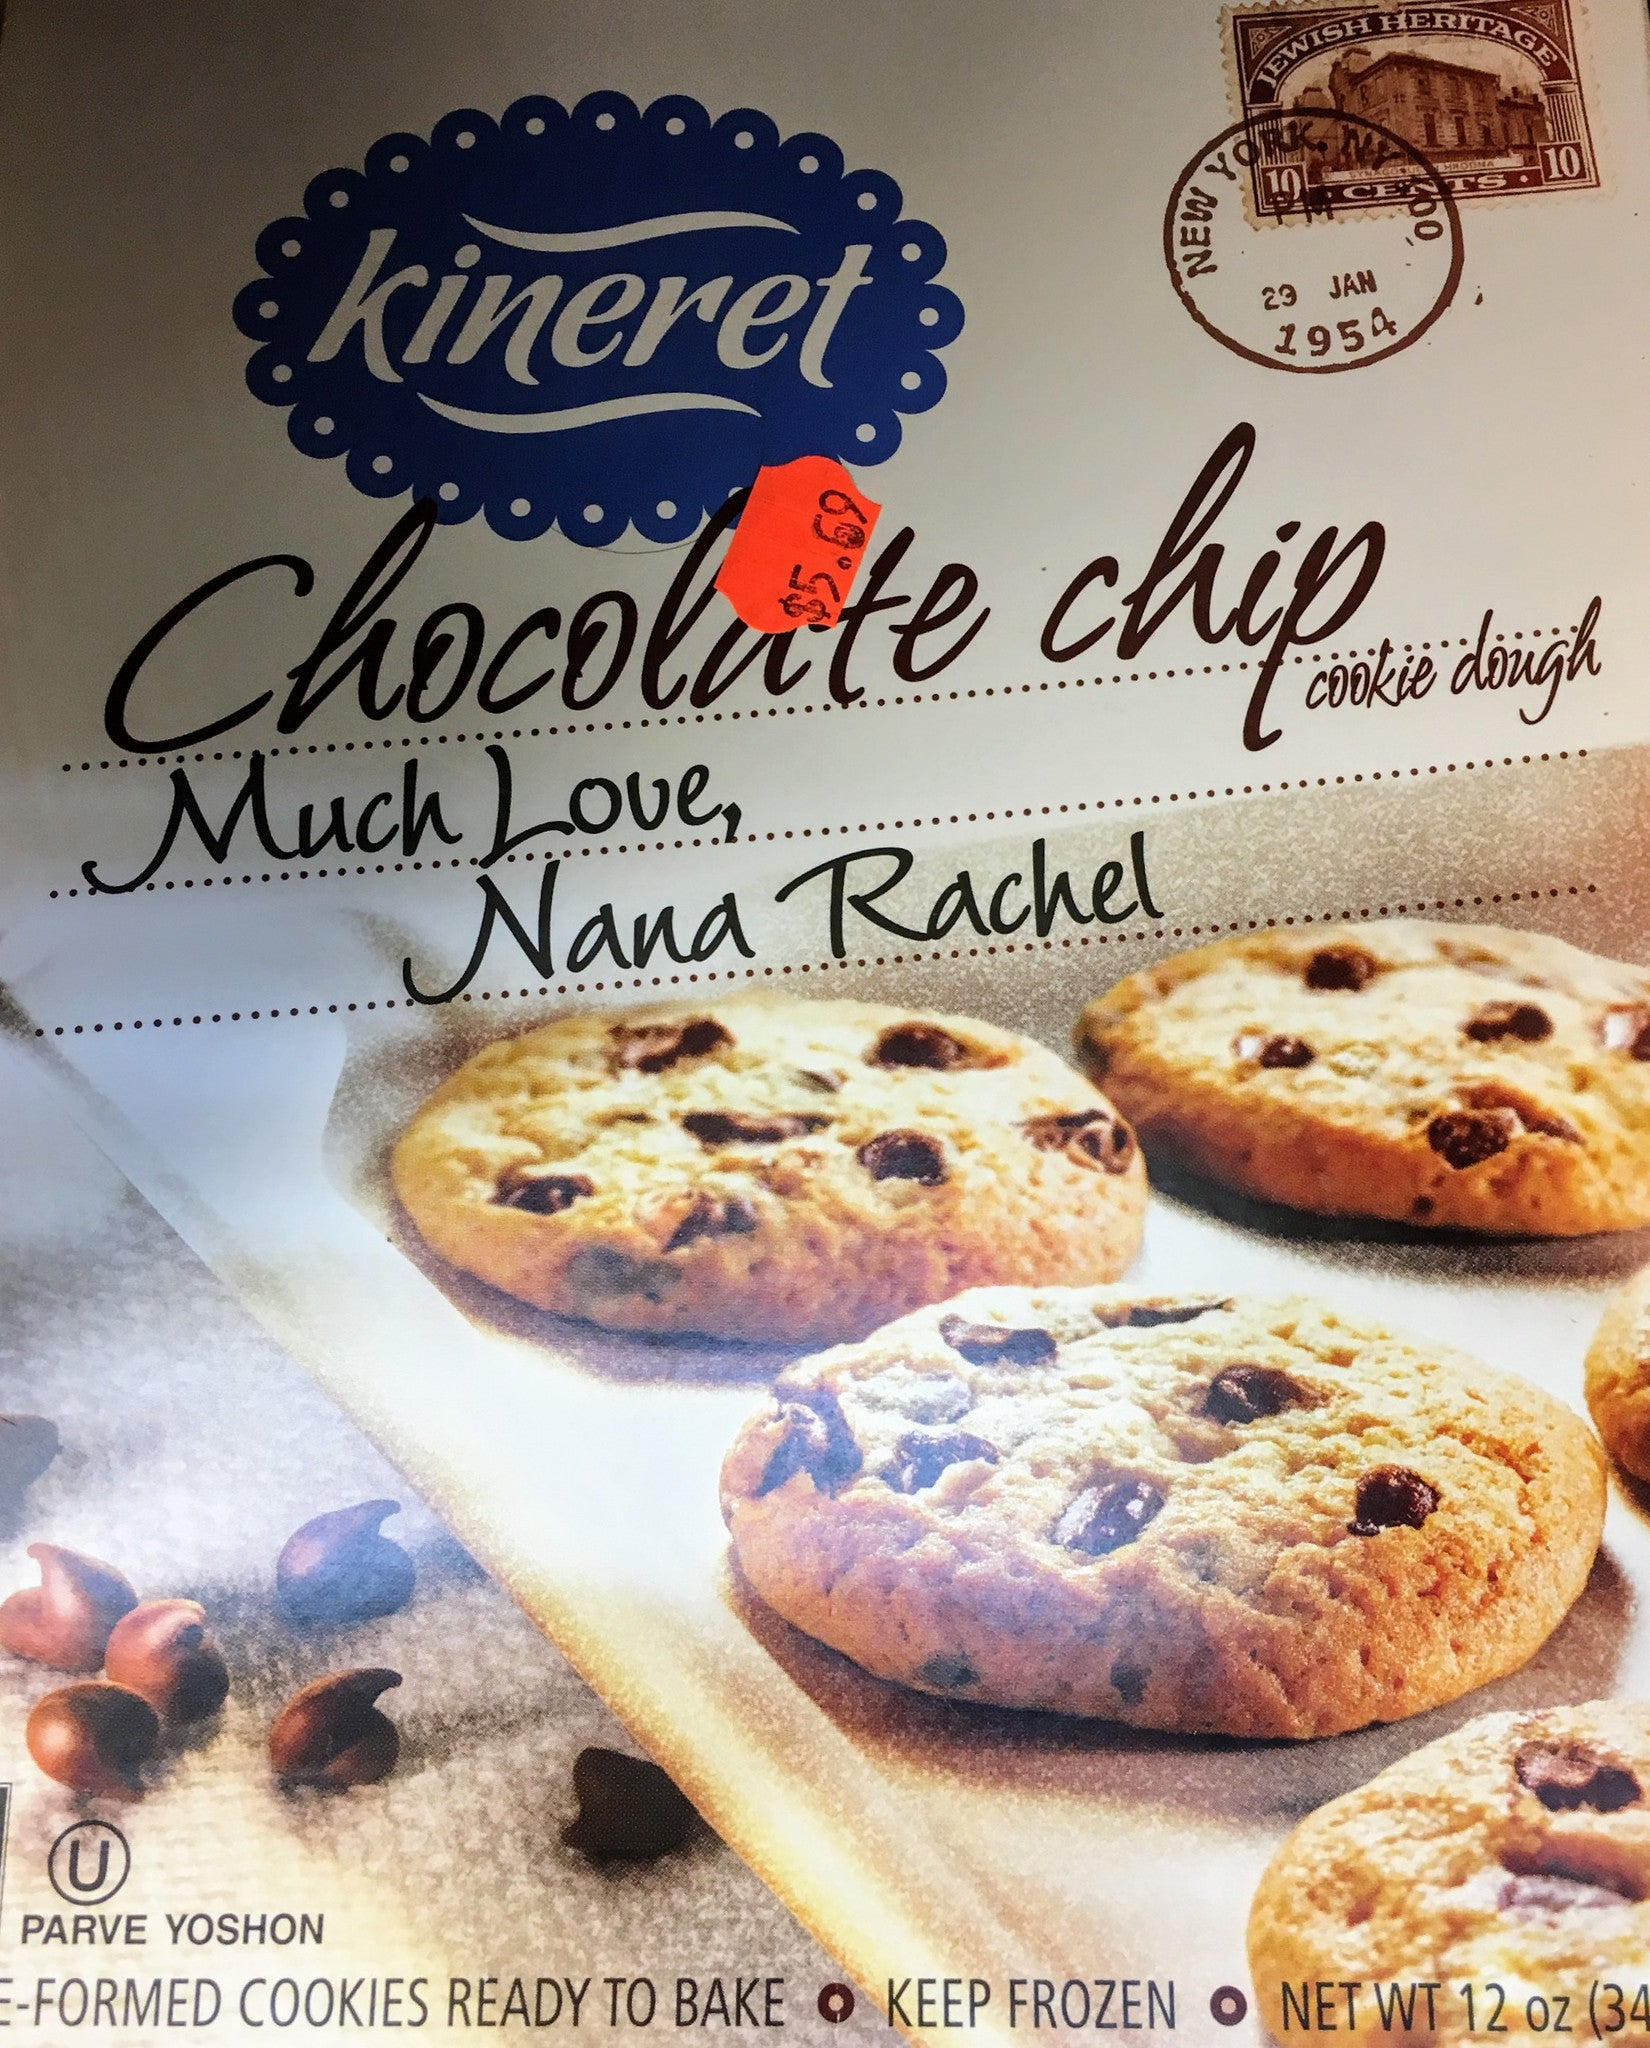 Kineret Choc. Chip Cookies